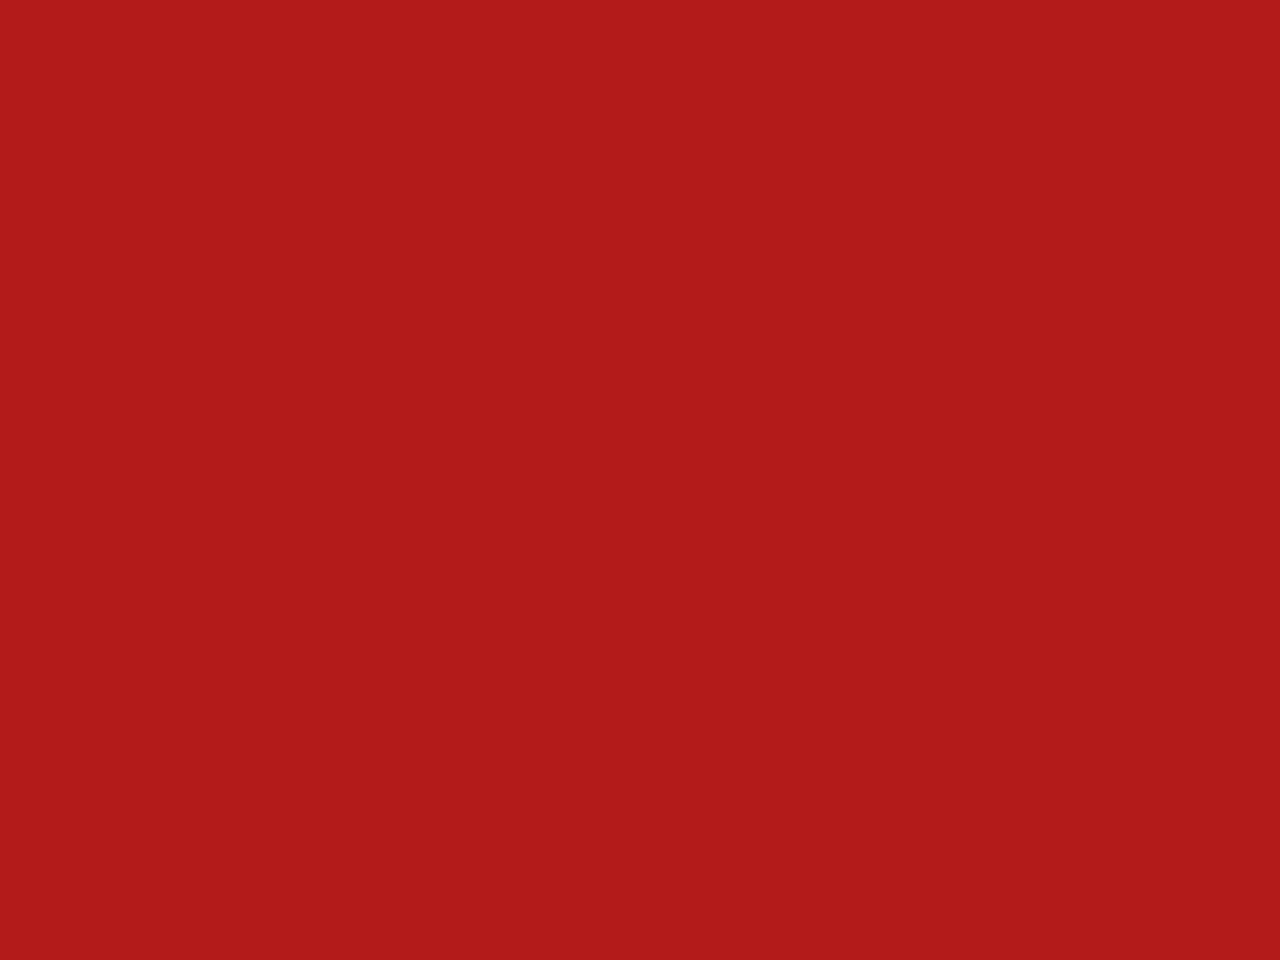 1280x960 Carnelian Solid Color Background